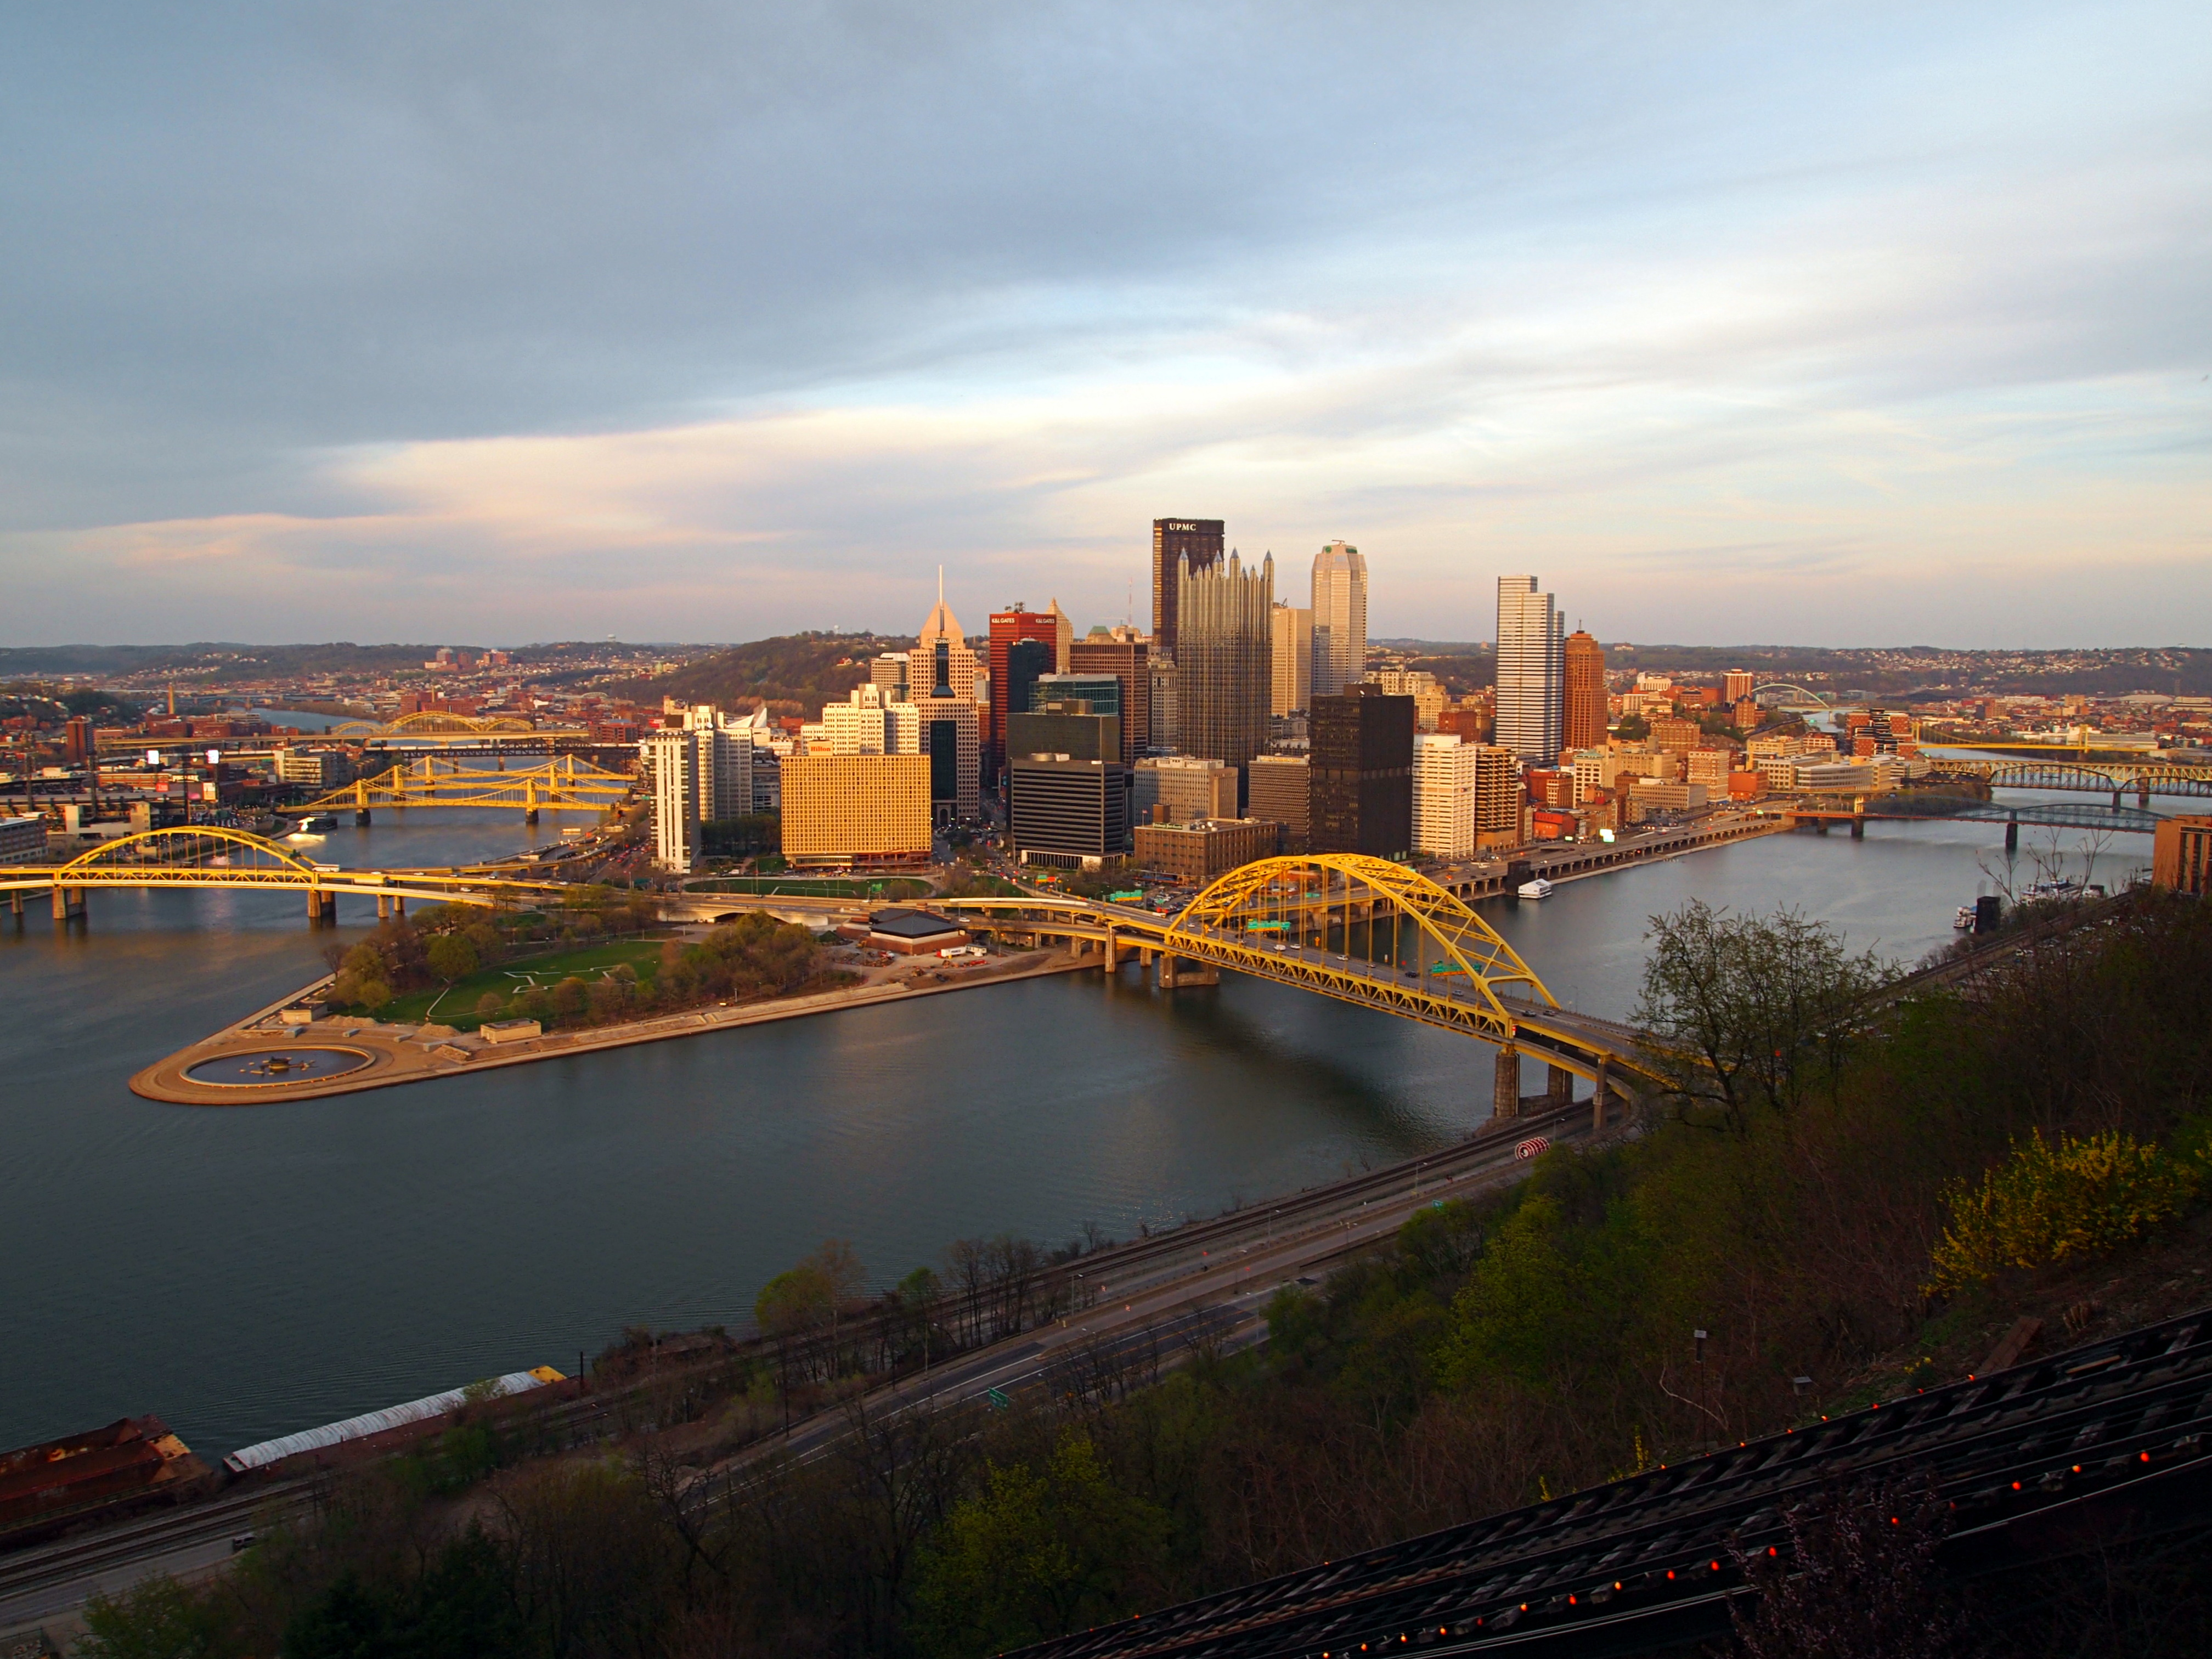 <h3>Pittsburgh Training Institute</h3>